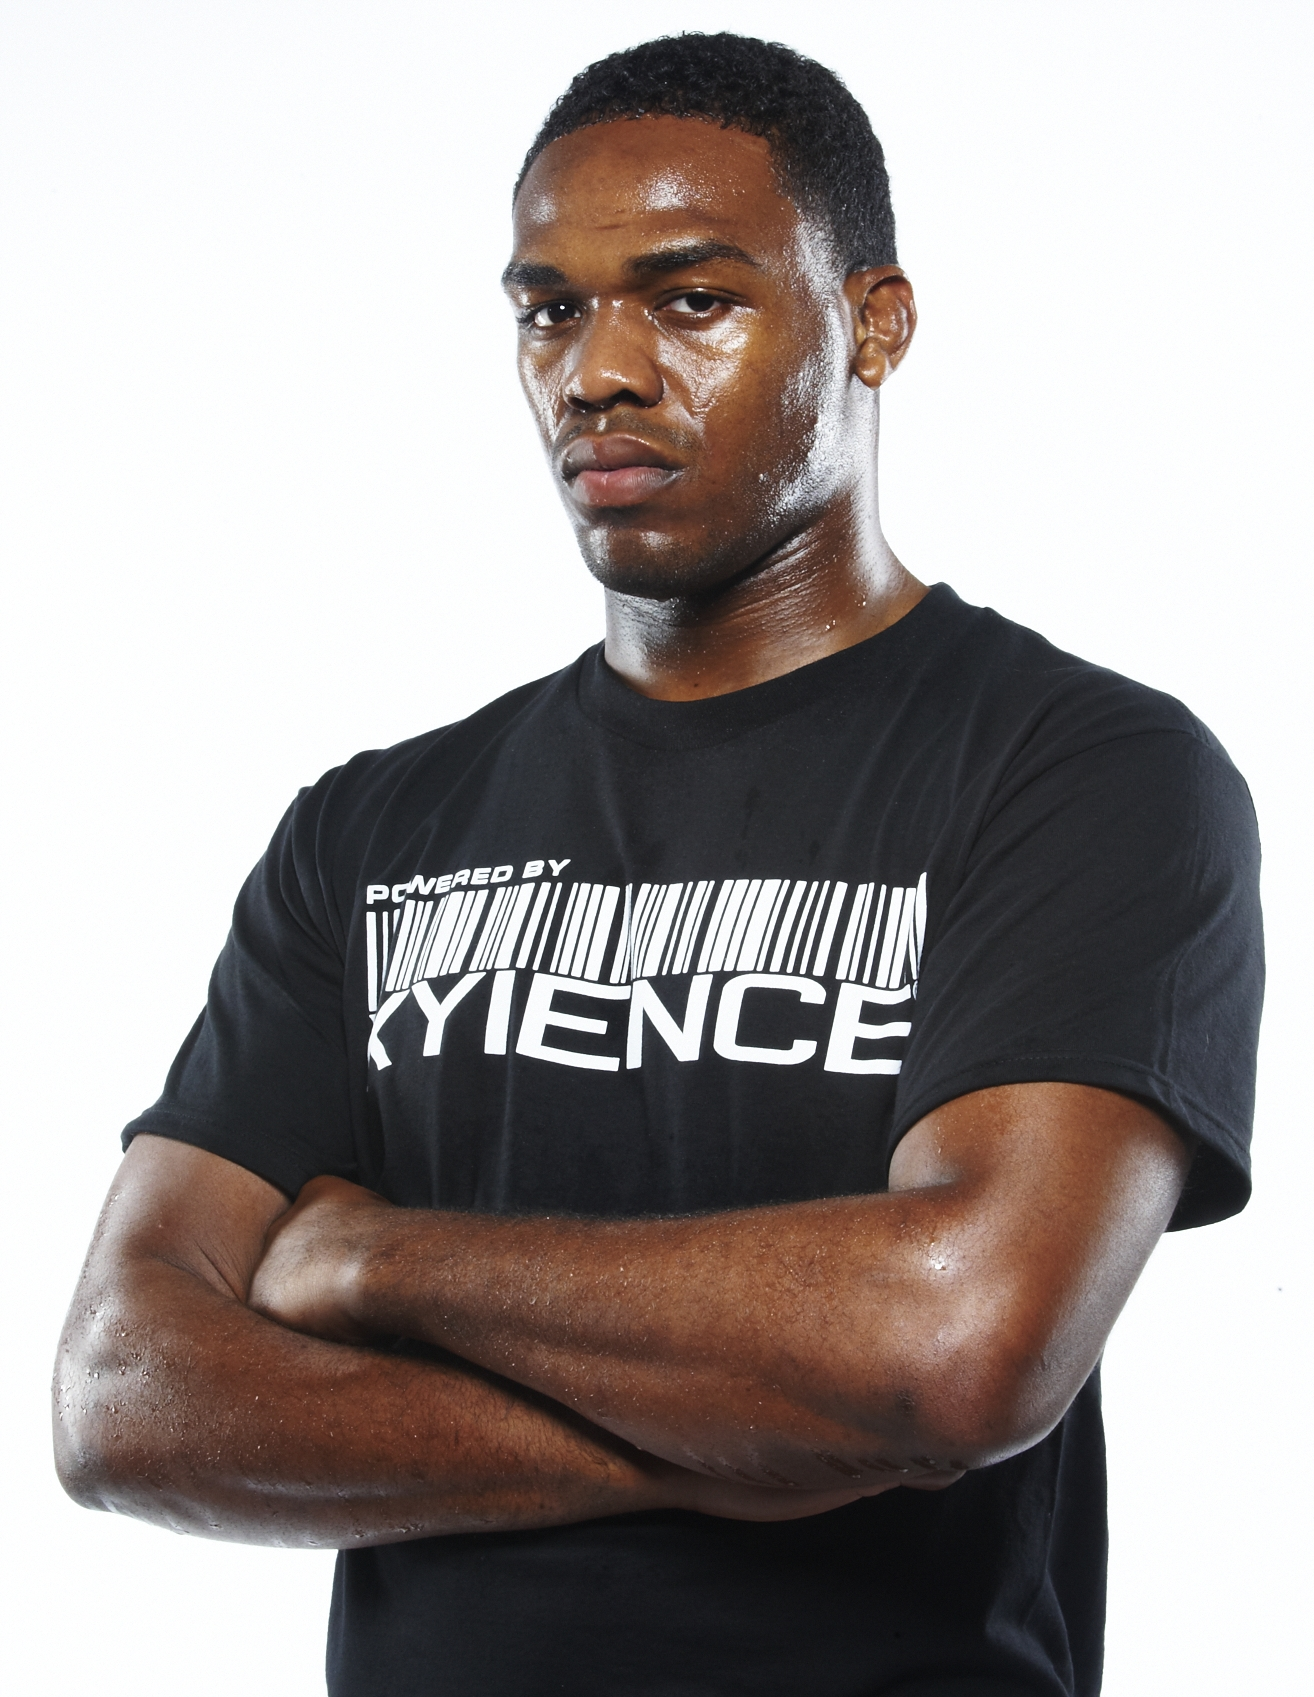 XYIENCE athlete Jon Jones